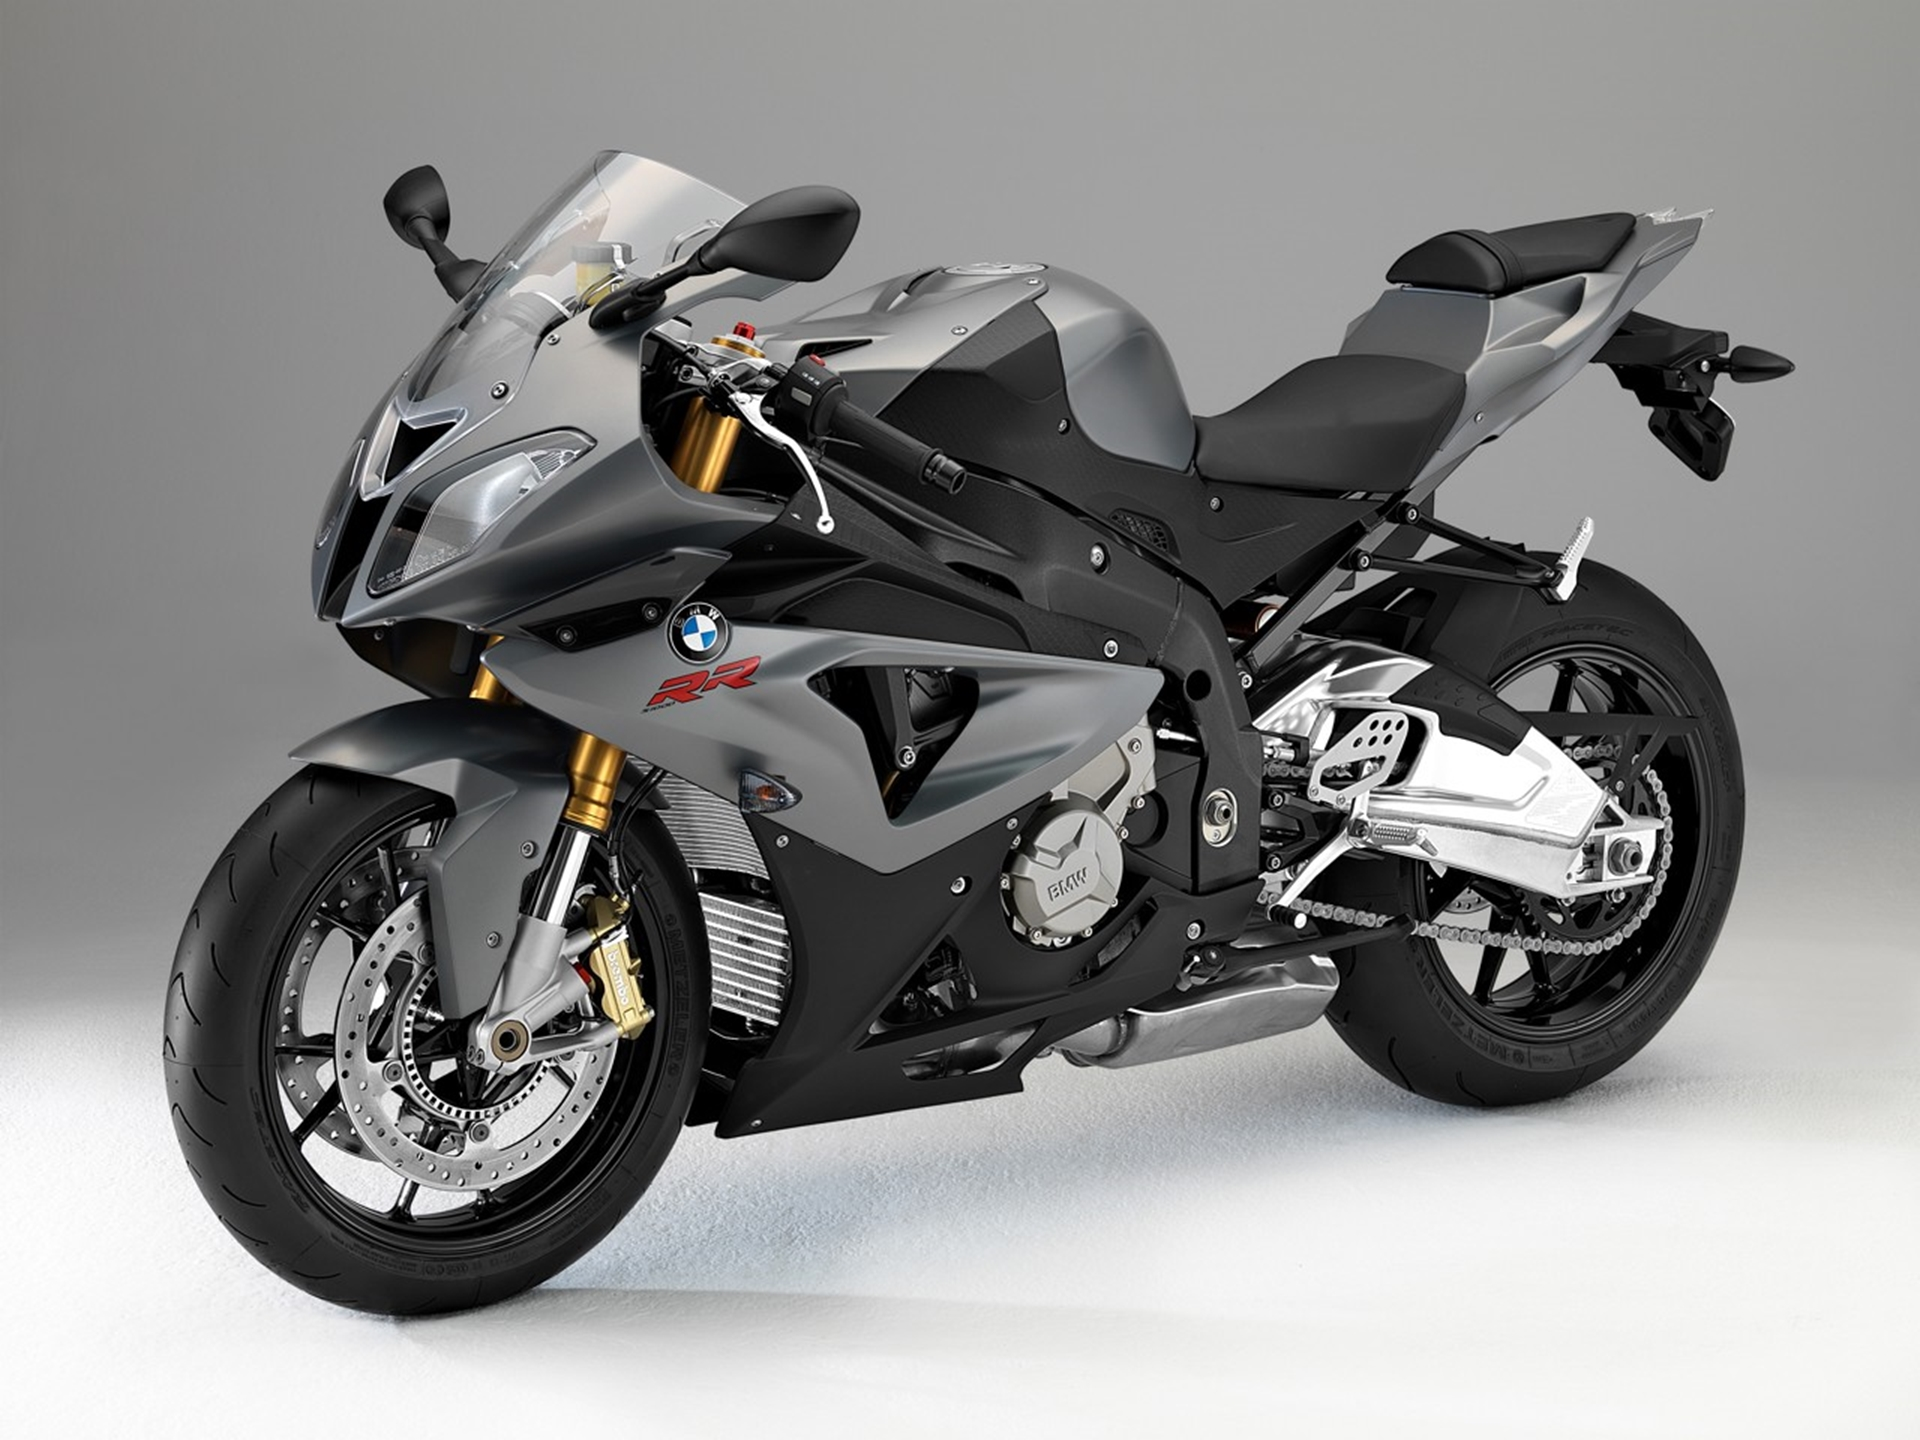 BMW Motorcycle S1000RR